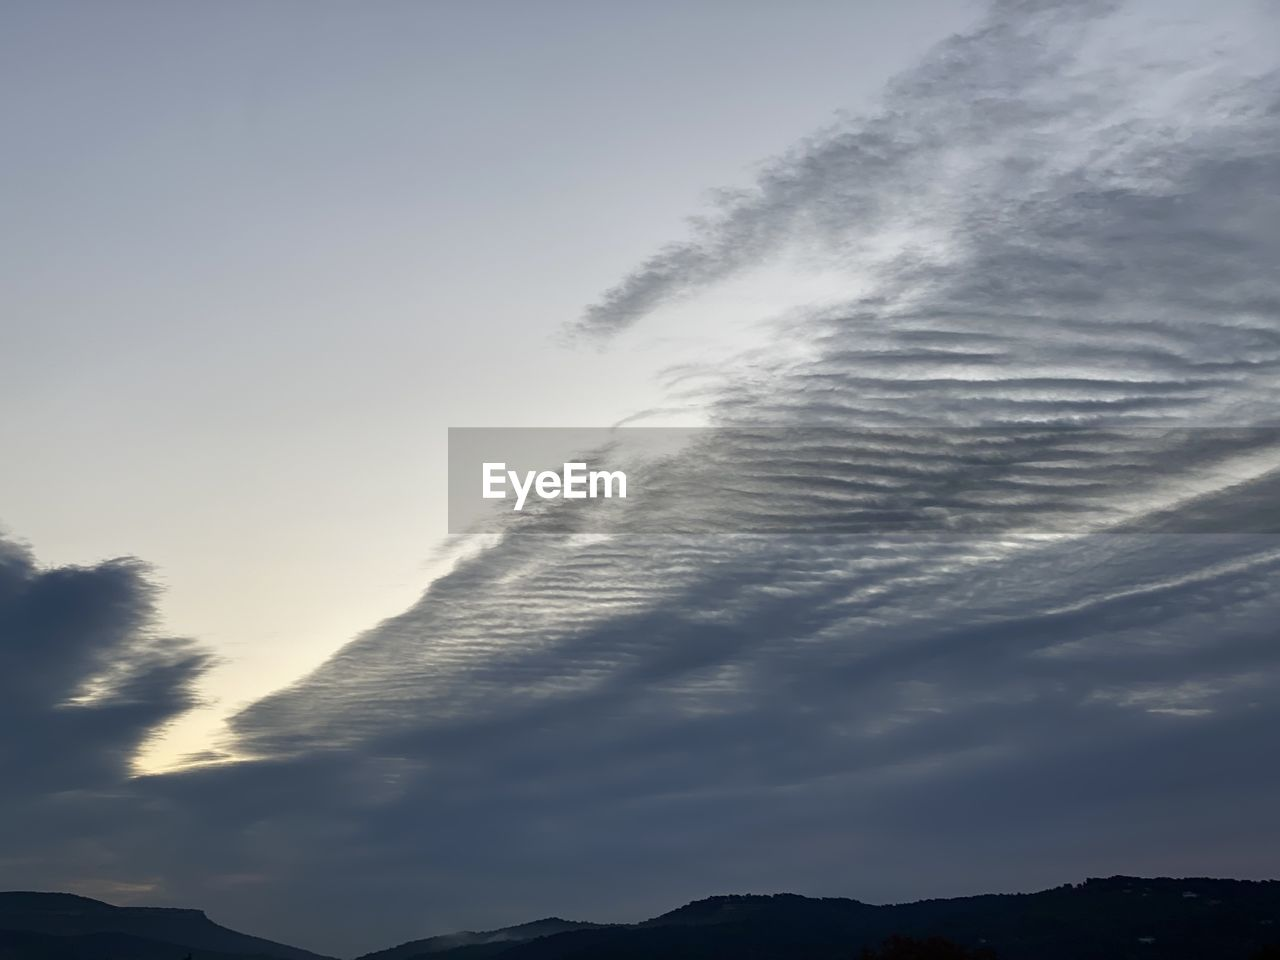 sky, cloud - sky, beauty in nature, low angle view, tranquility, silhouette, no people, scenics - nature, tranquil scene, nature, mountain, outdoors, day, sunset, idyllic, environment, non-urban scene, mountain range, fog